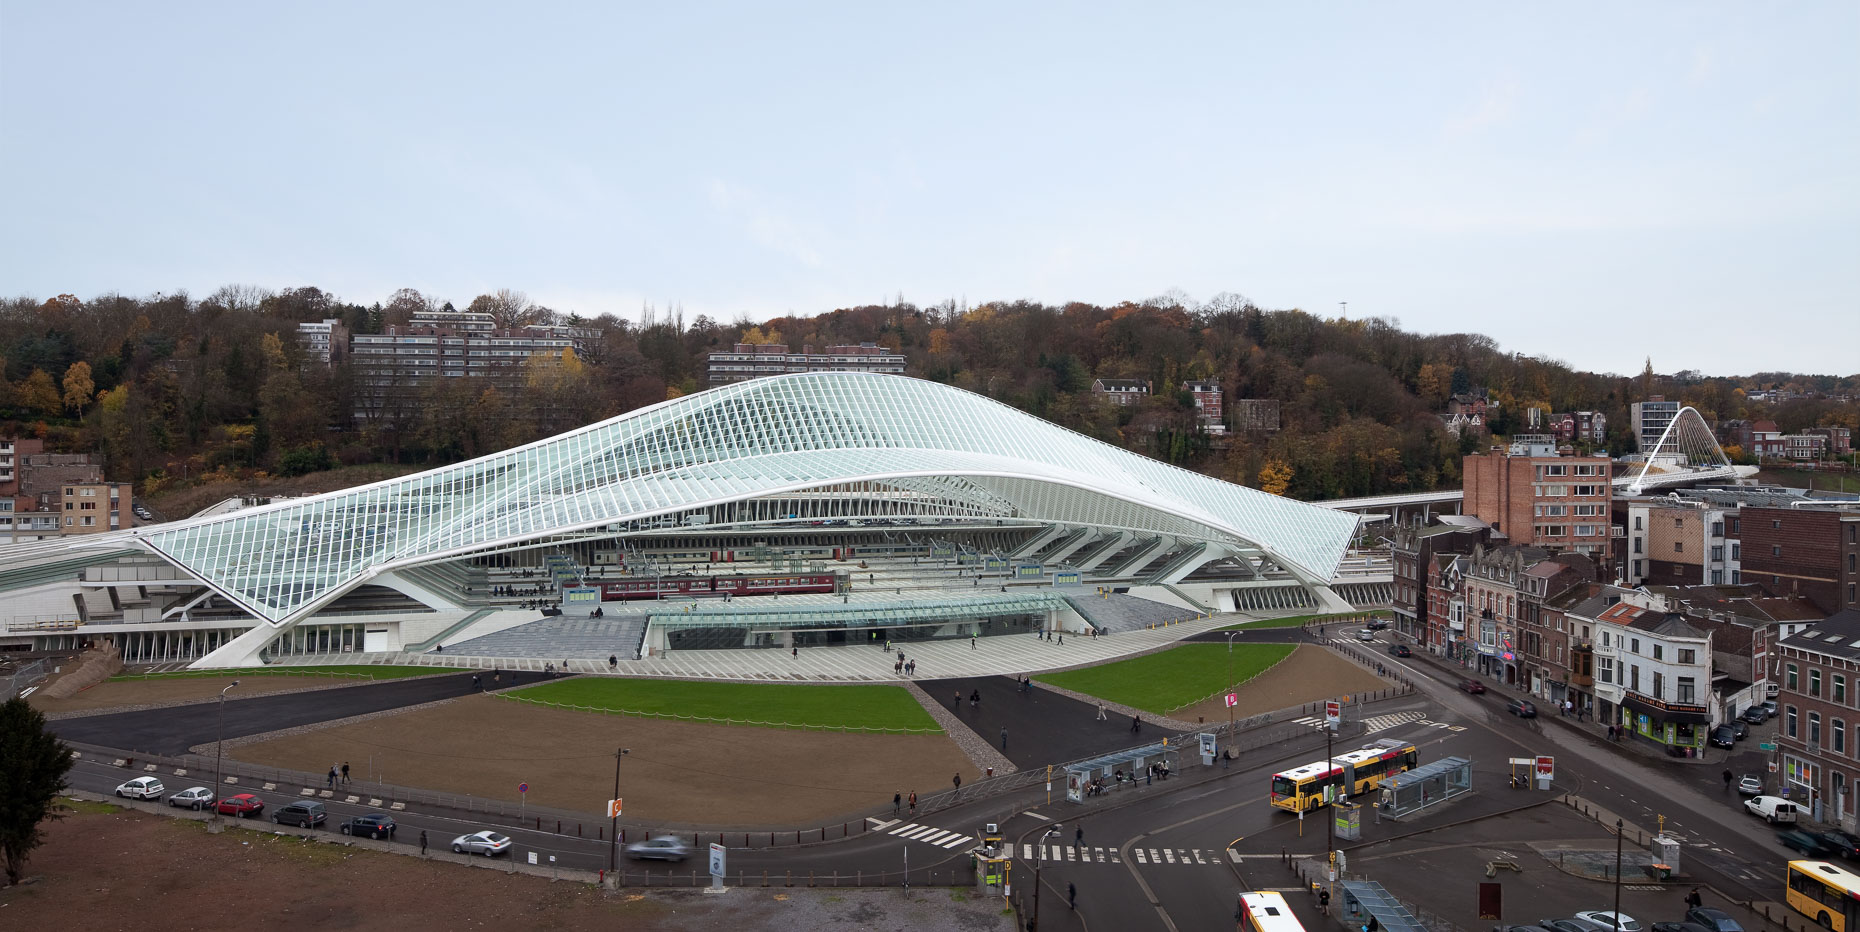 Calatrava_Liege_JamesEwing-37